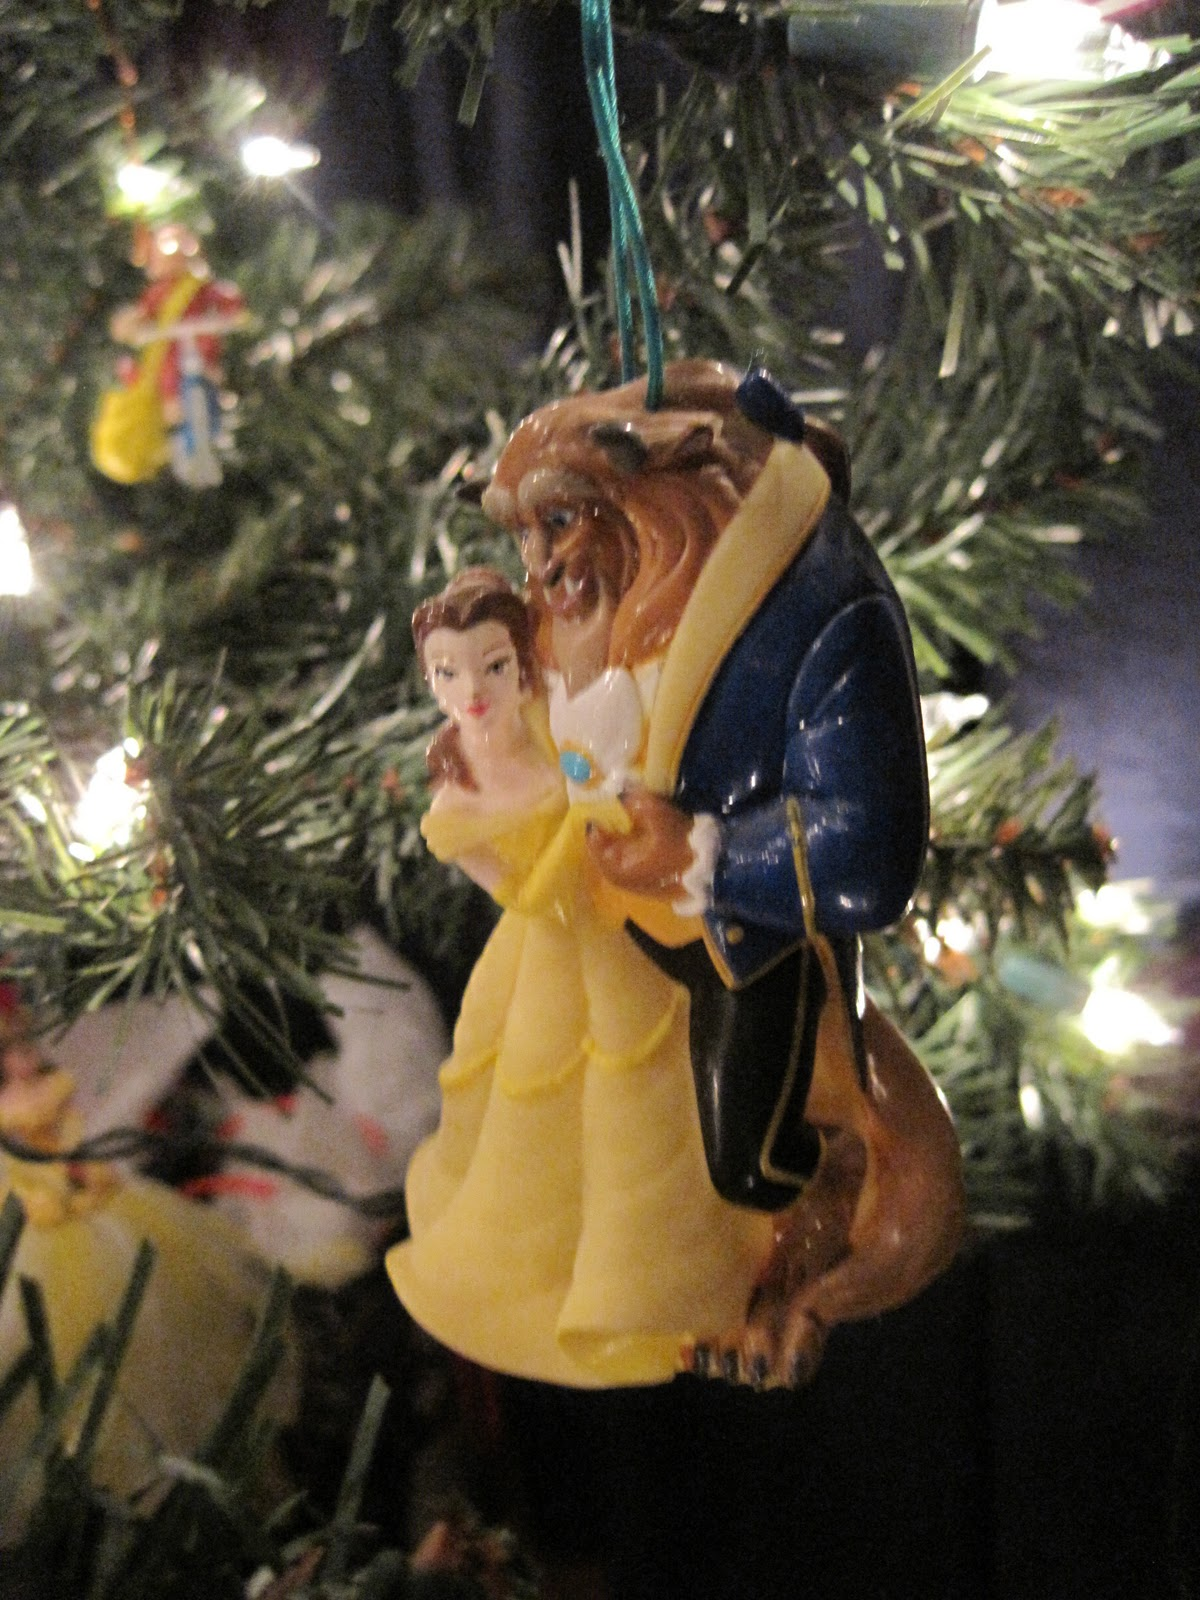 heres the last onemy vinyl disneyenesco belle and beast its another light up ornament belle and the beast are hollow so you can stick an ornament - Disney Beauty And The Beast Christmas Decorations